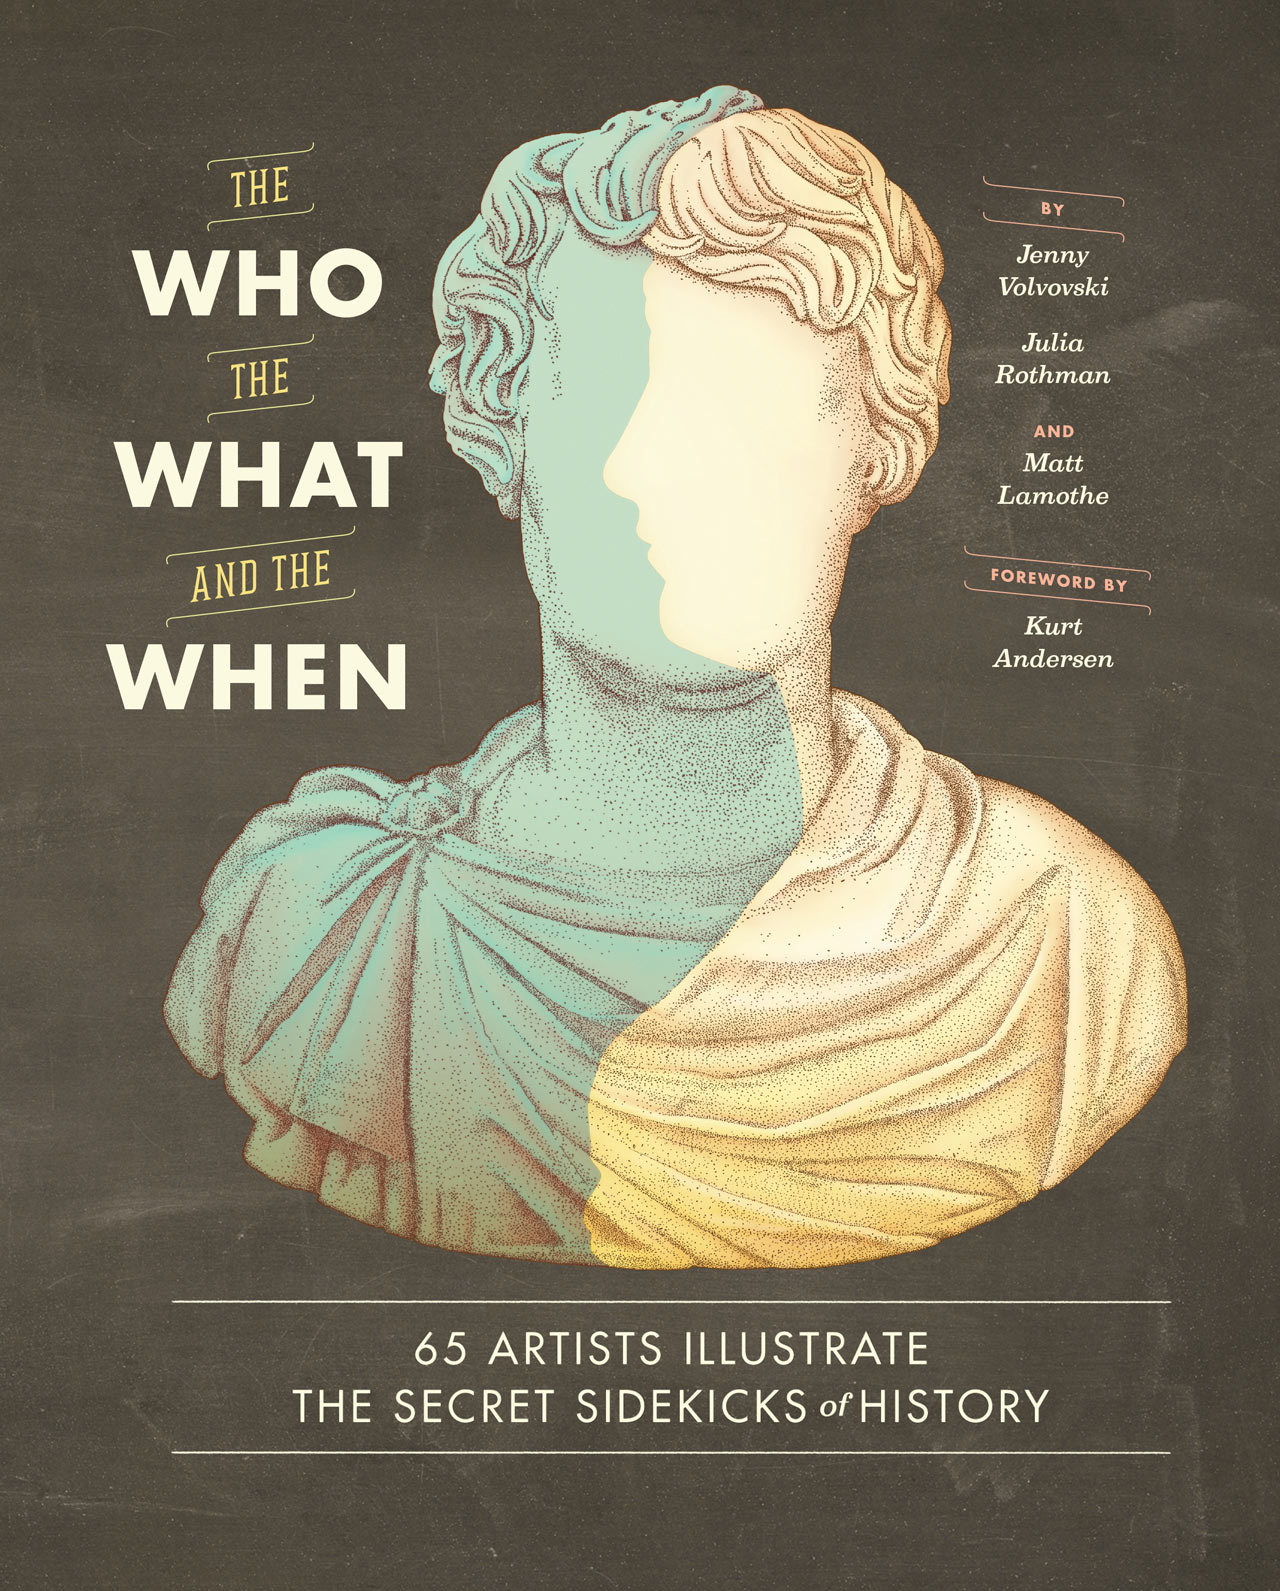 The Who, The What, and The When Chronicles Unsung Heroes of the Past